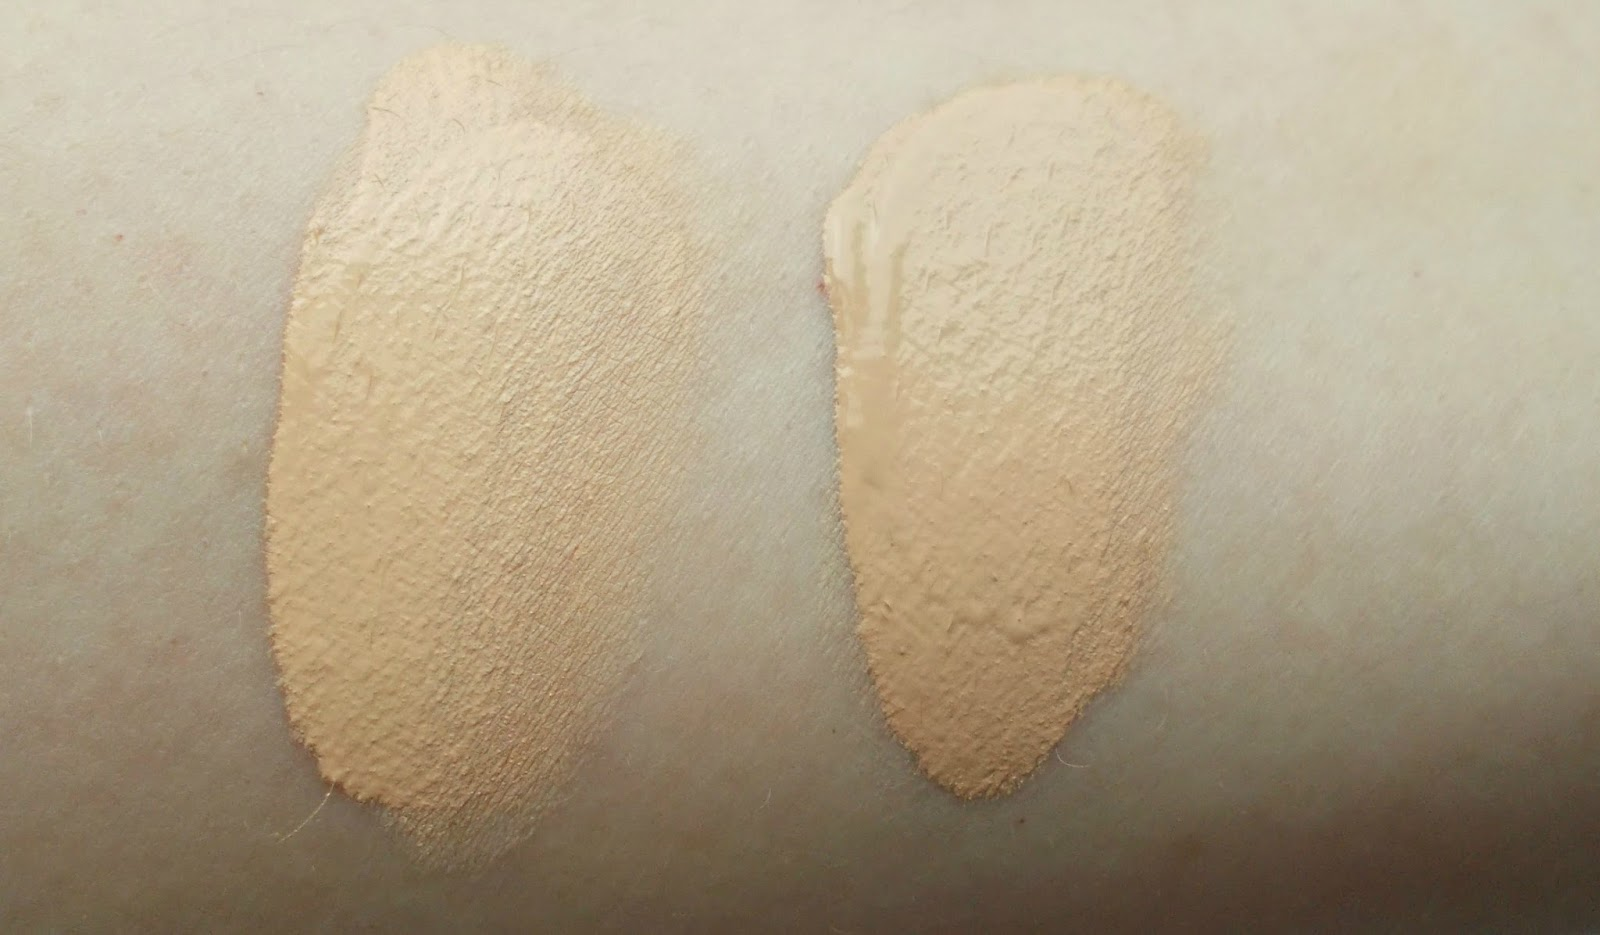 Vichy Dermablend 05 Porcelain 15 Opal foundation swatches